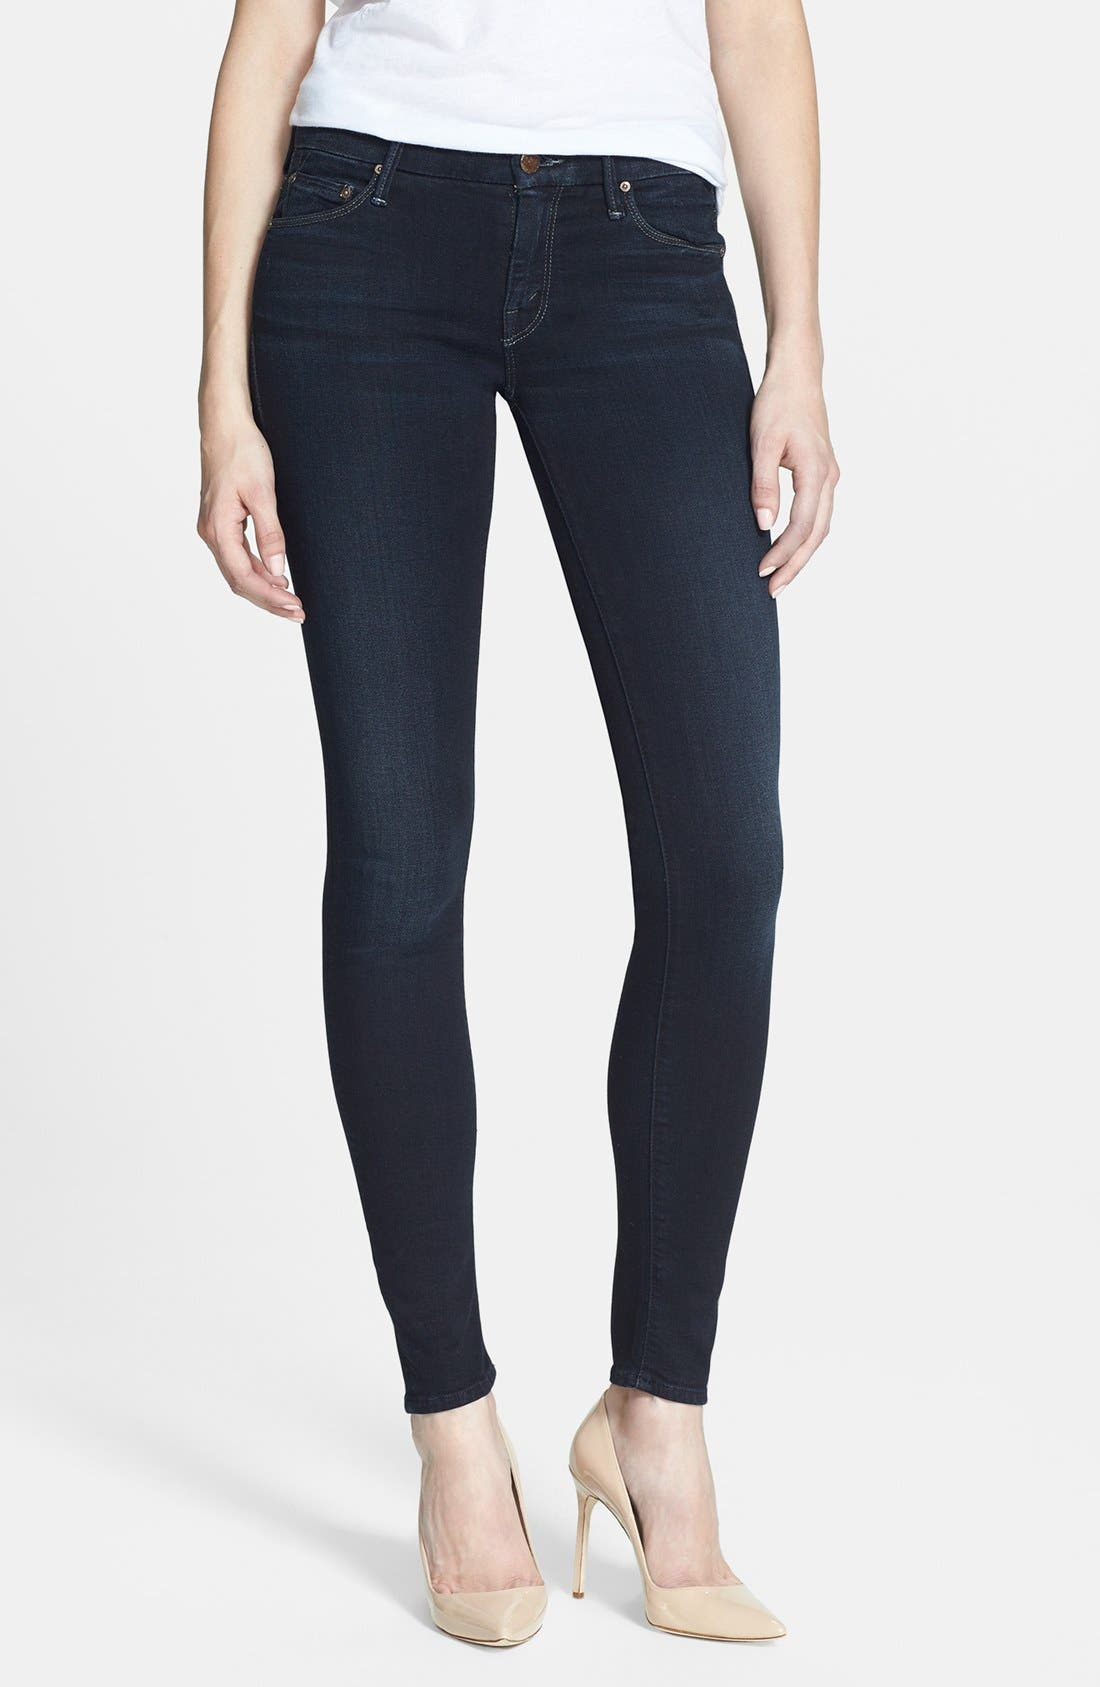 'The Looker' Stretch Skinny Jeans,                         Main,                         color, Bittersweet